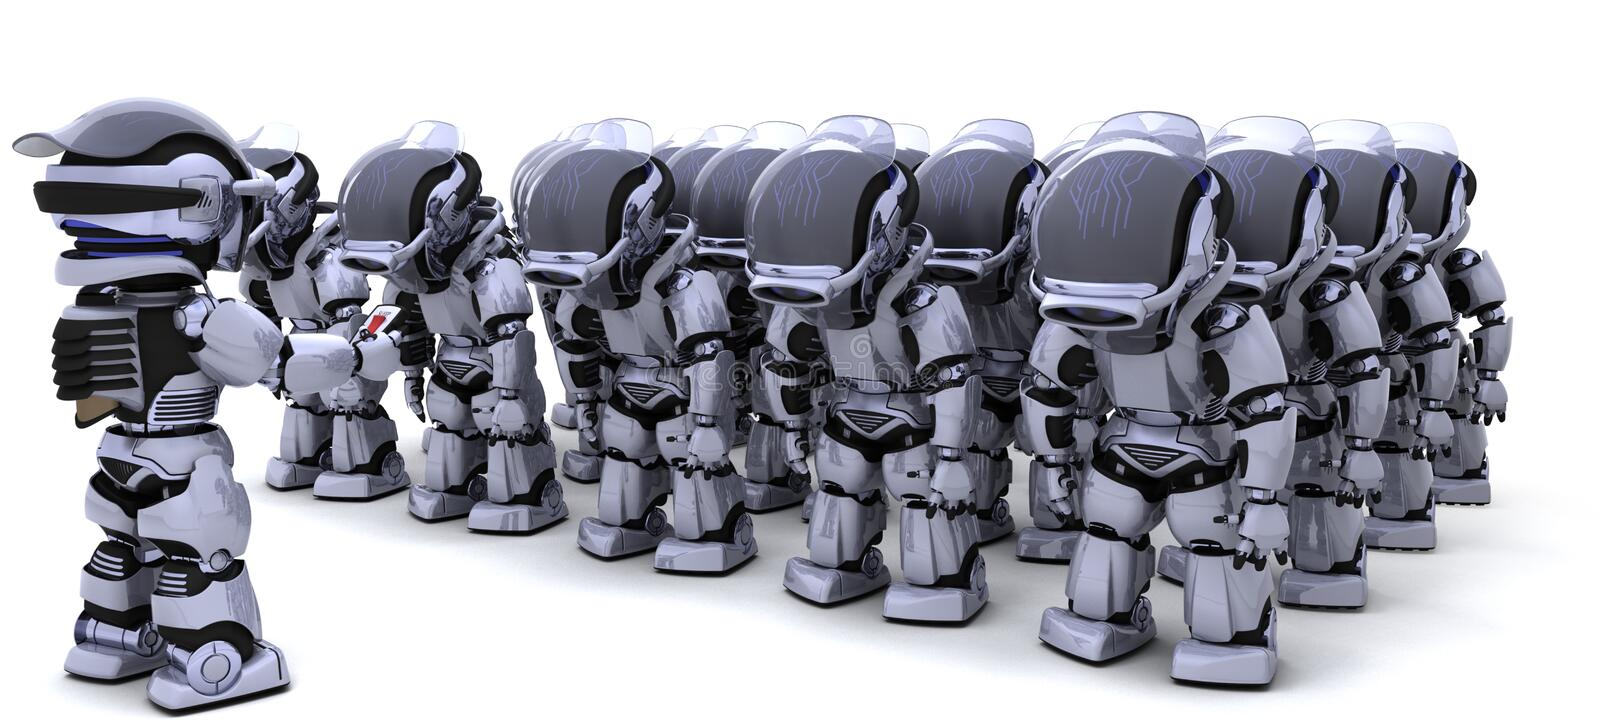 Robot shutting down army of robots vector illustration